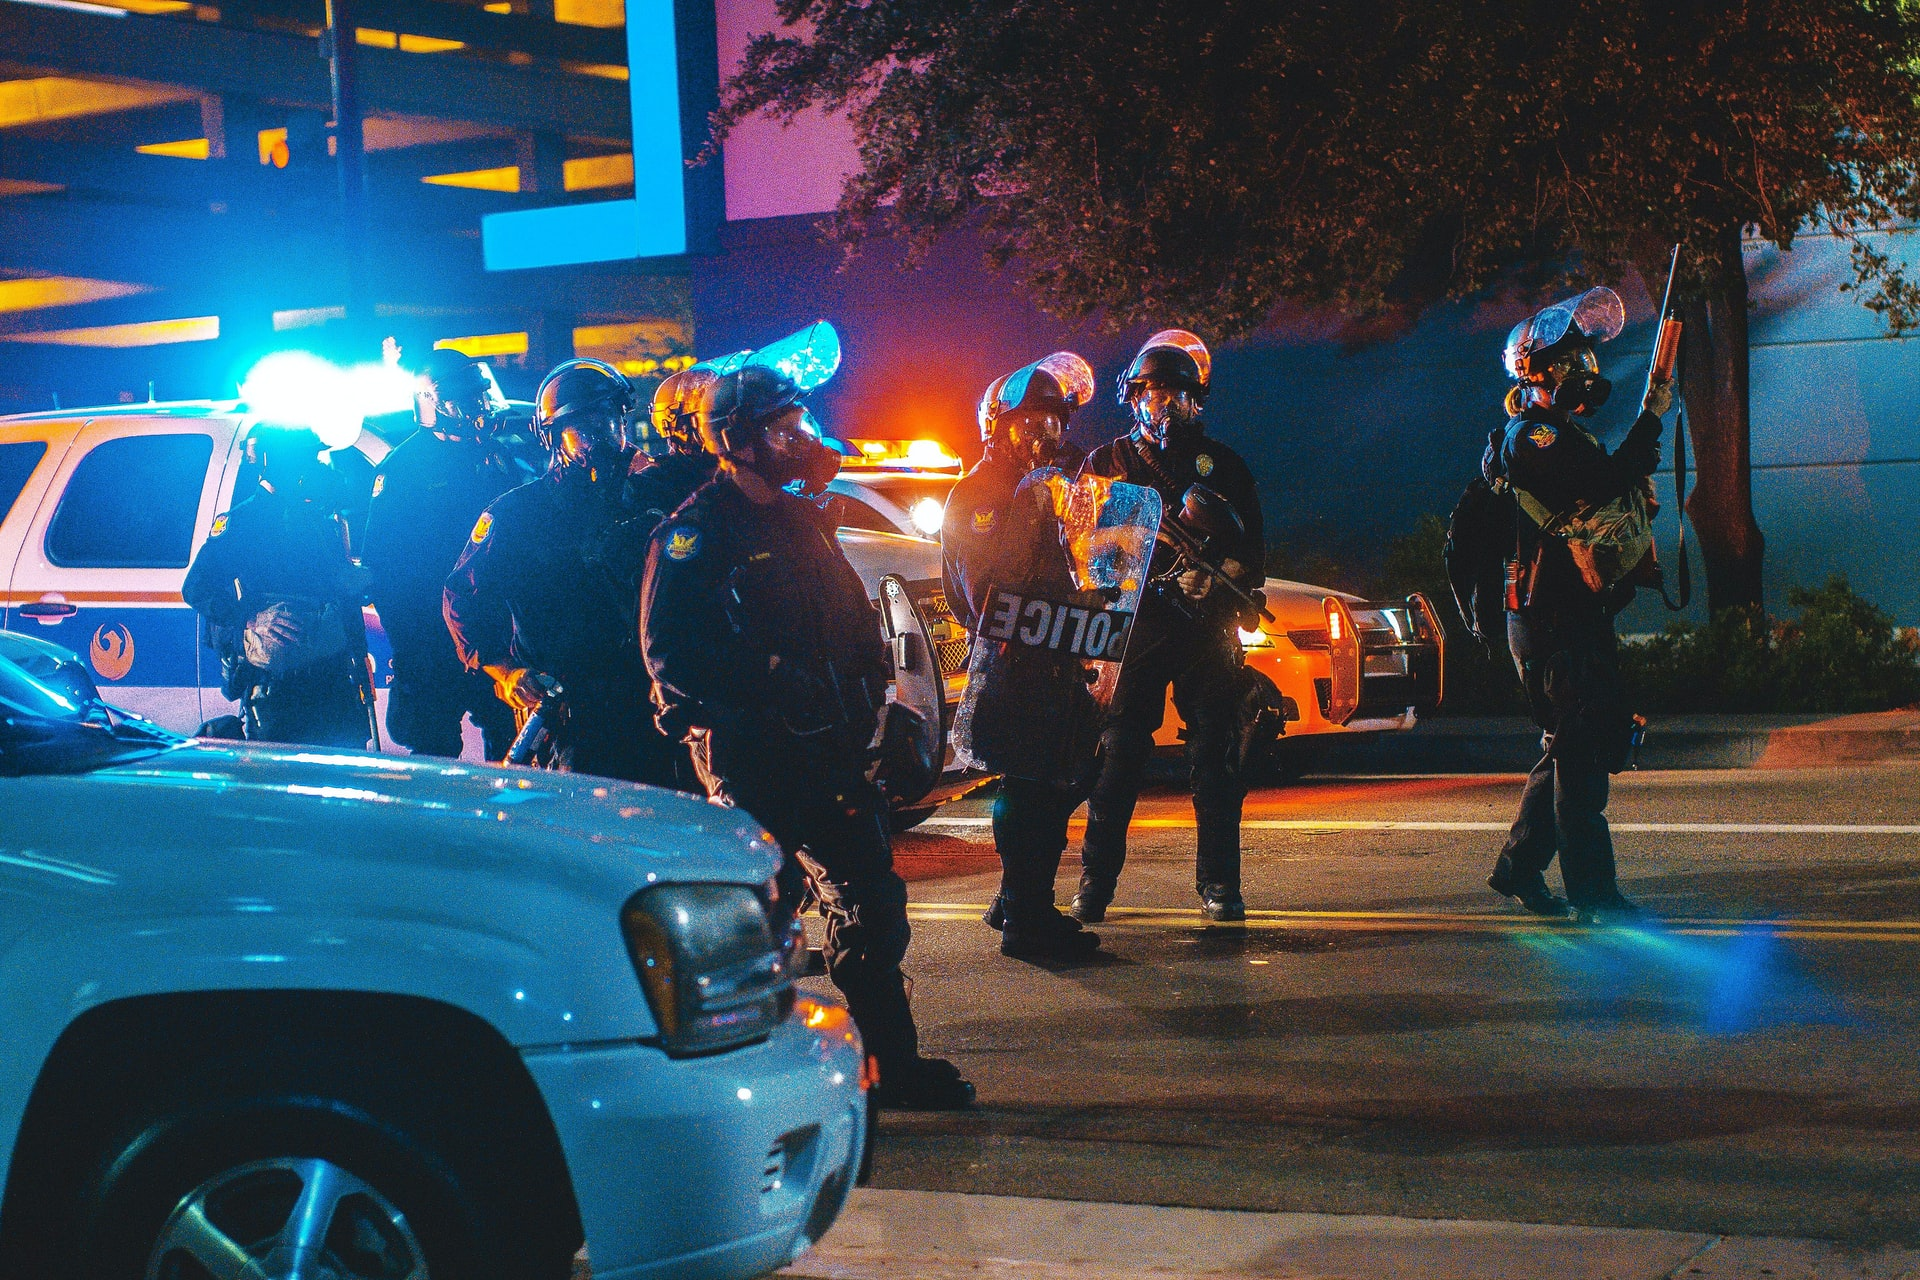 photo-of-riot-police-and-car-at-night-people-know-their-rights-campus-police